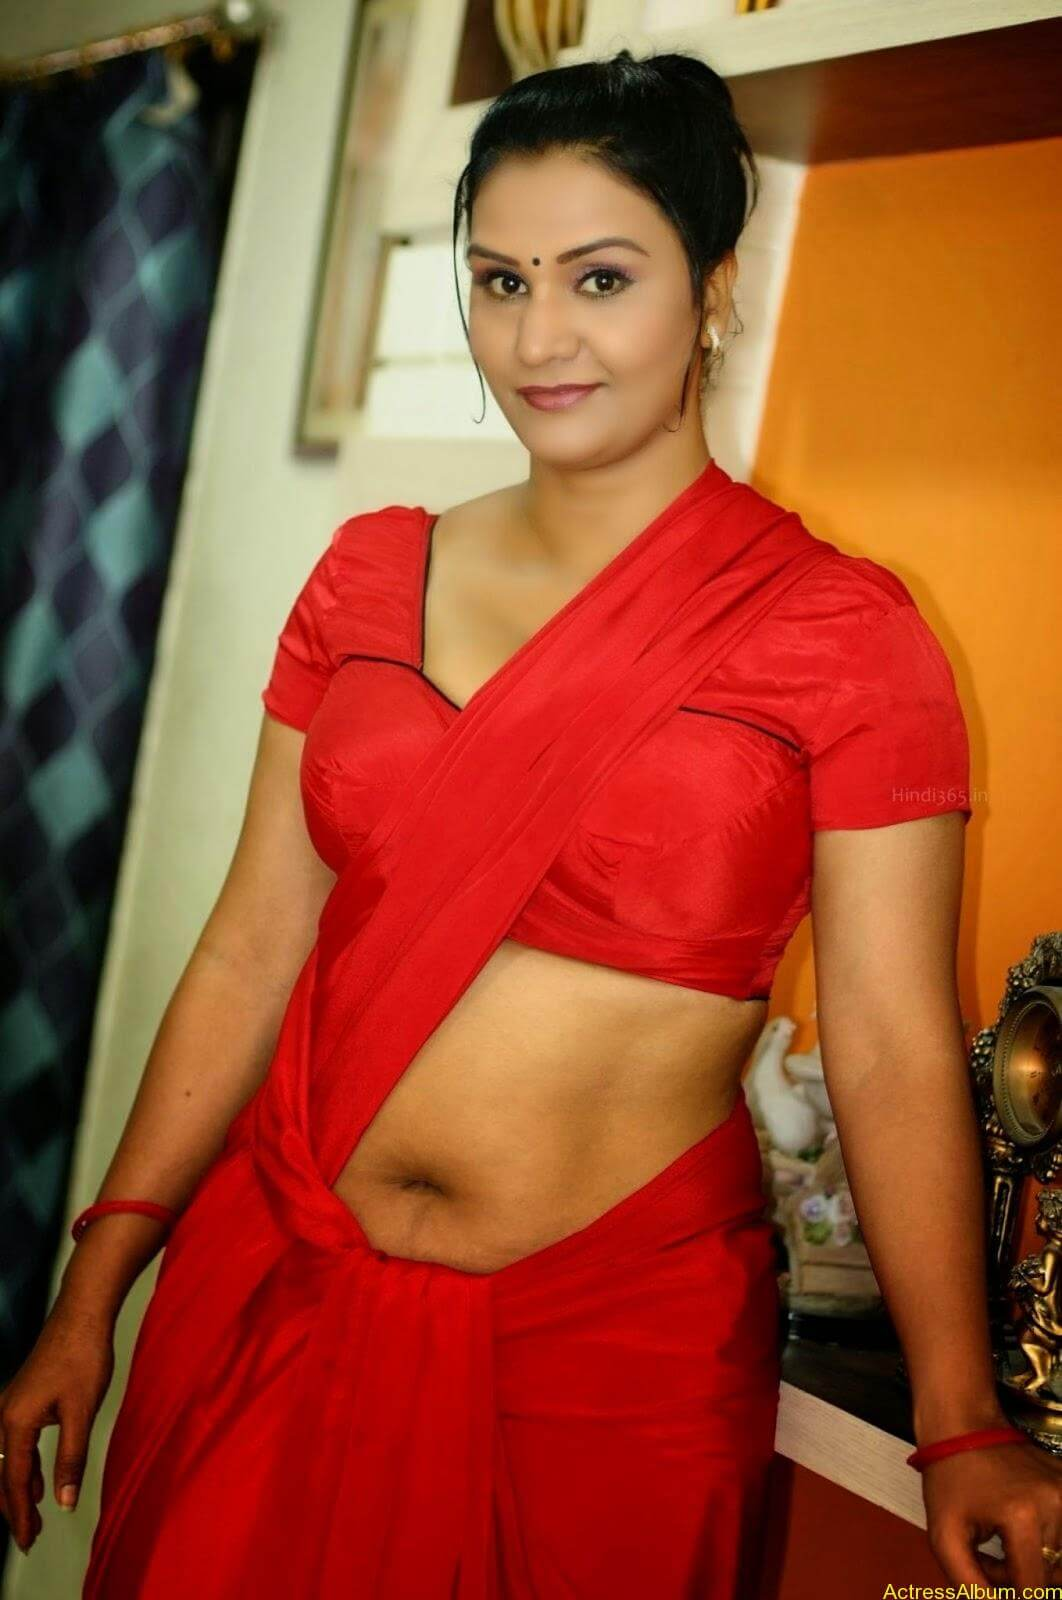 Actress Apoorva Very Hot In Red Saree Photo Collection -7266